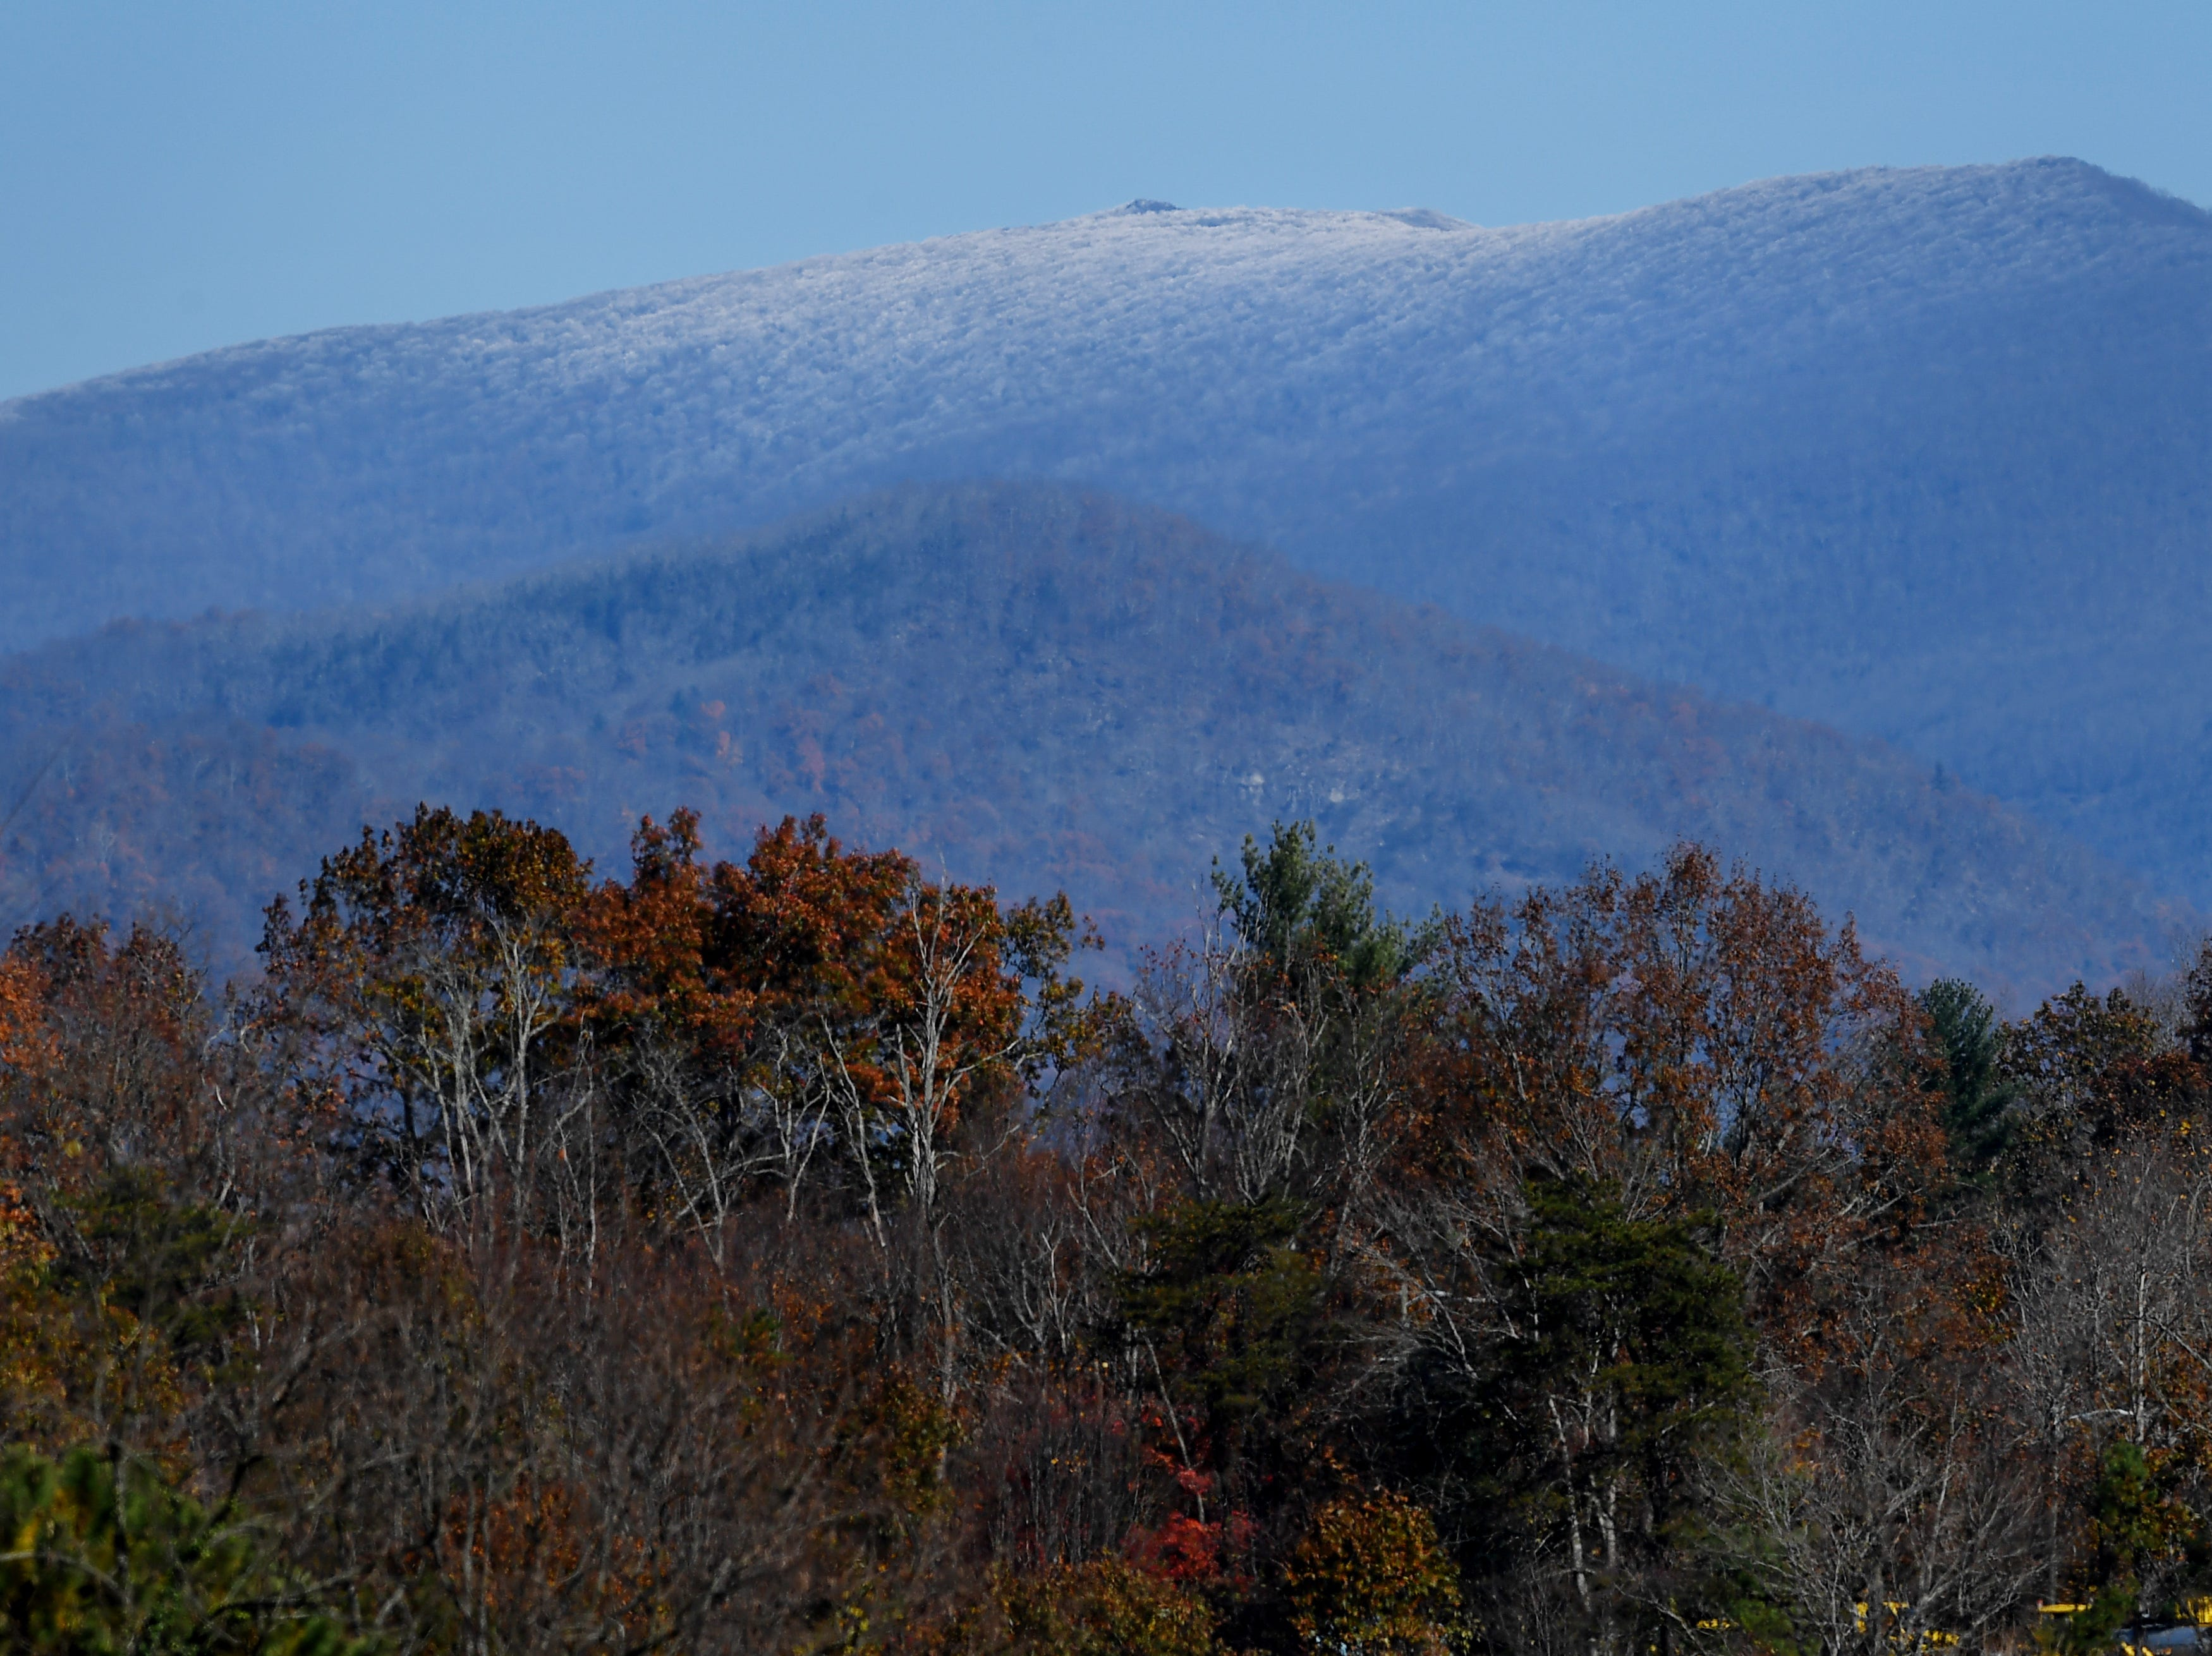 Snow is seen on a mountaintop from Asheville Nov. 10, 2018. The National Weather Service has issued a Winter Storm Watch for the Asheville area and surrounding areas from Wednesday evening into Thursday afternoon.